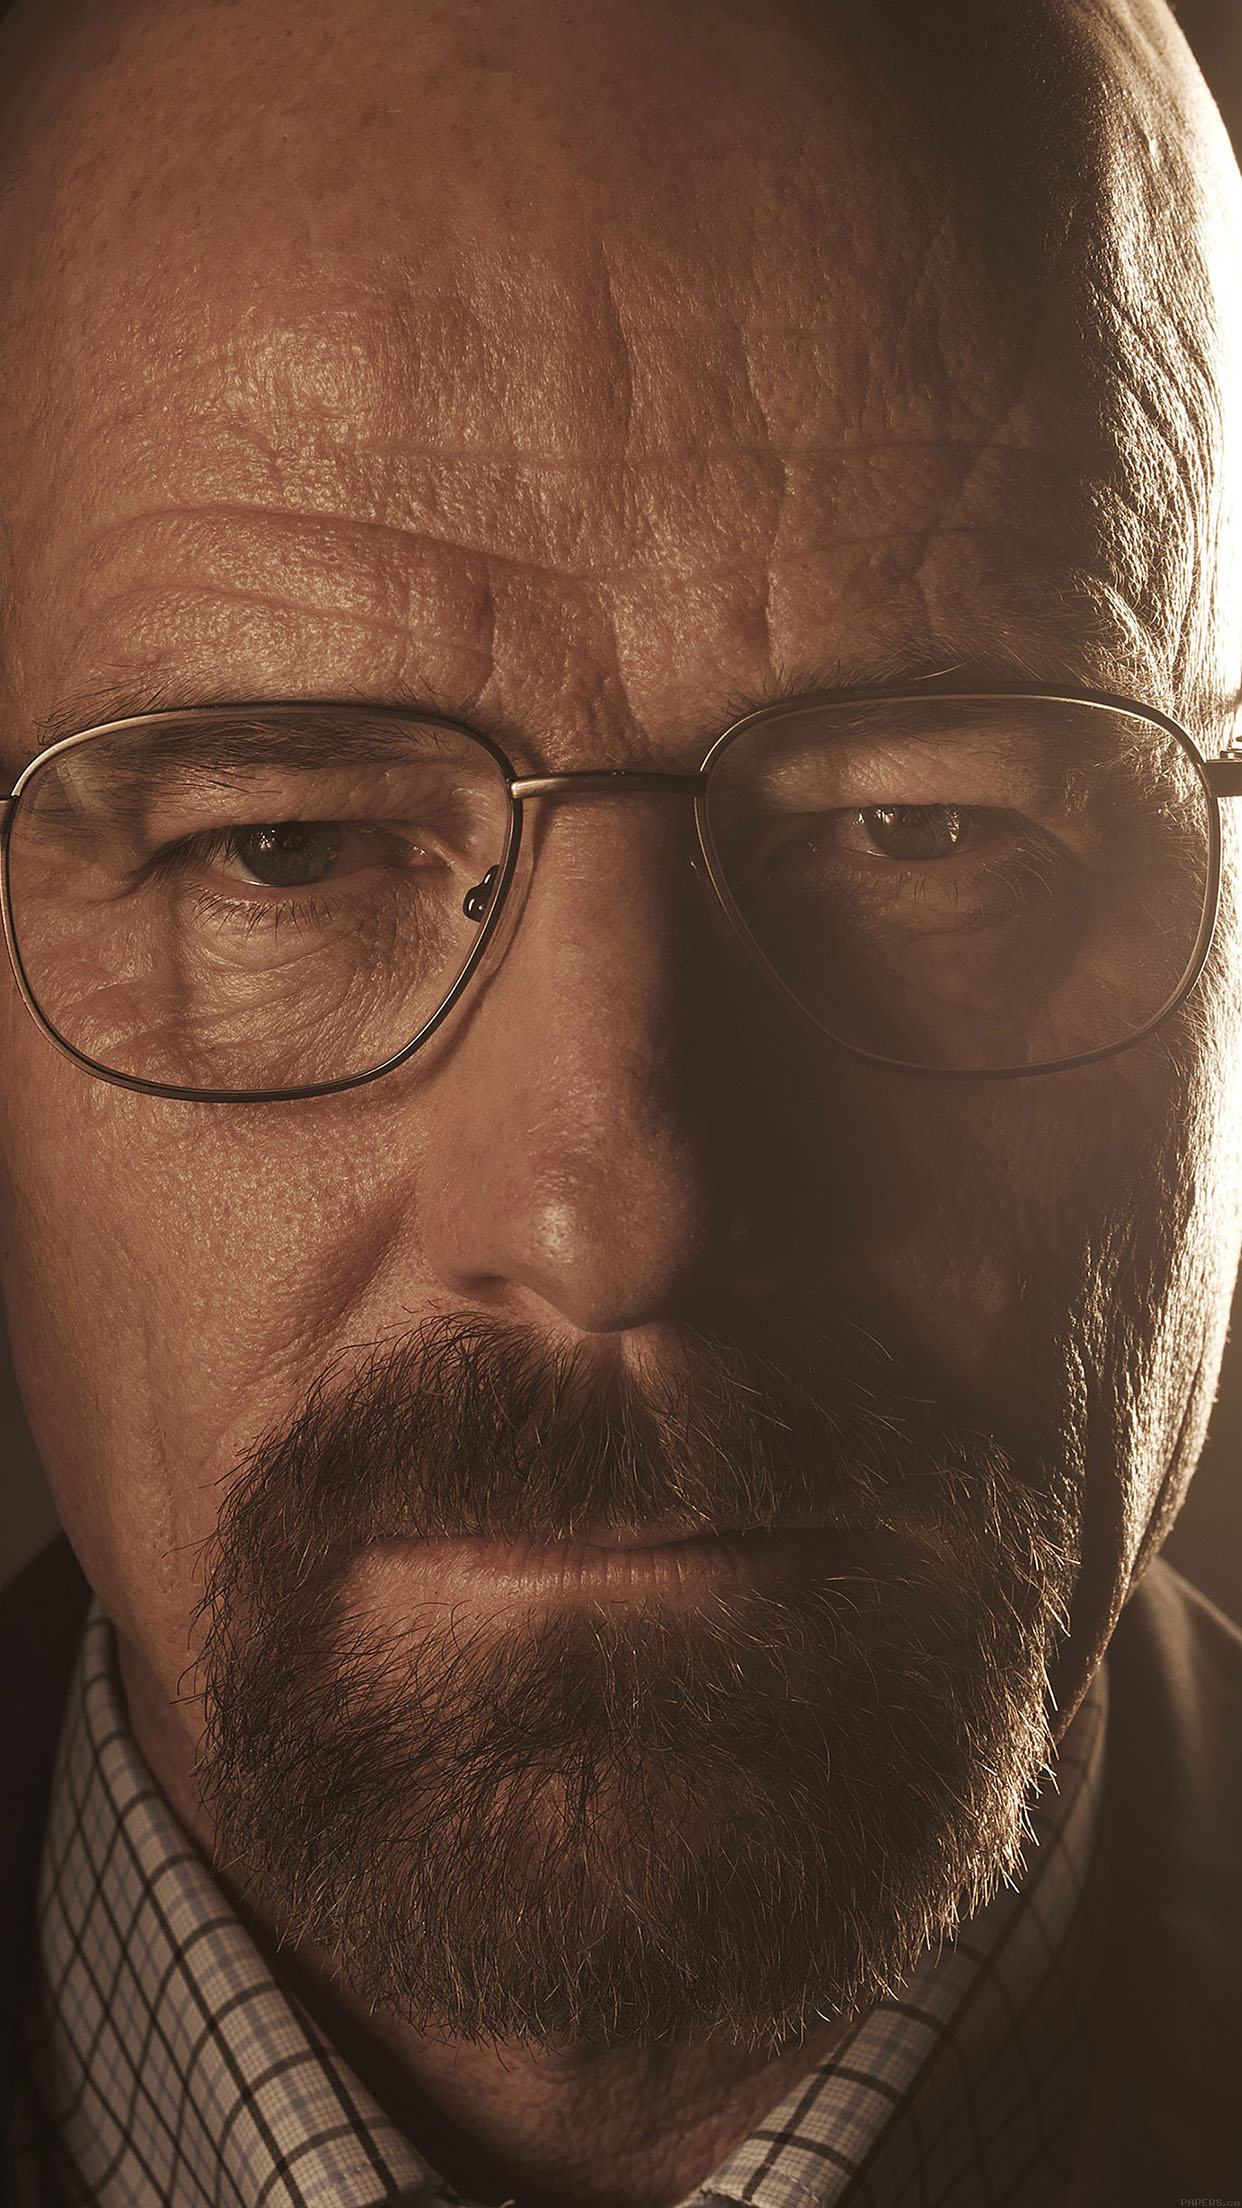 ha28-amc-breaking-bad-film-face - Papers.co